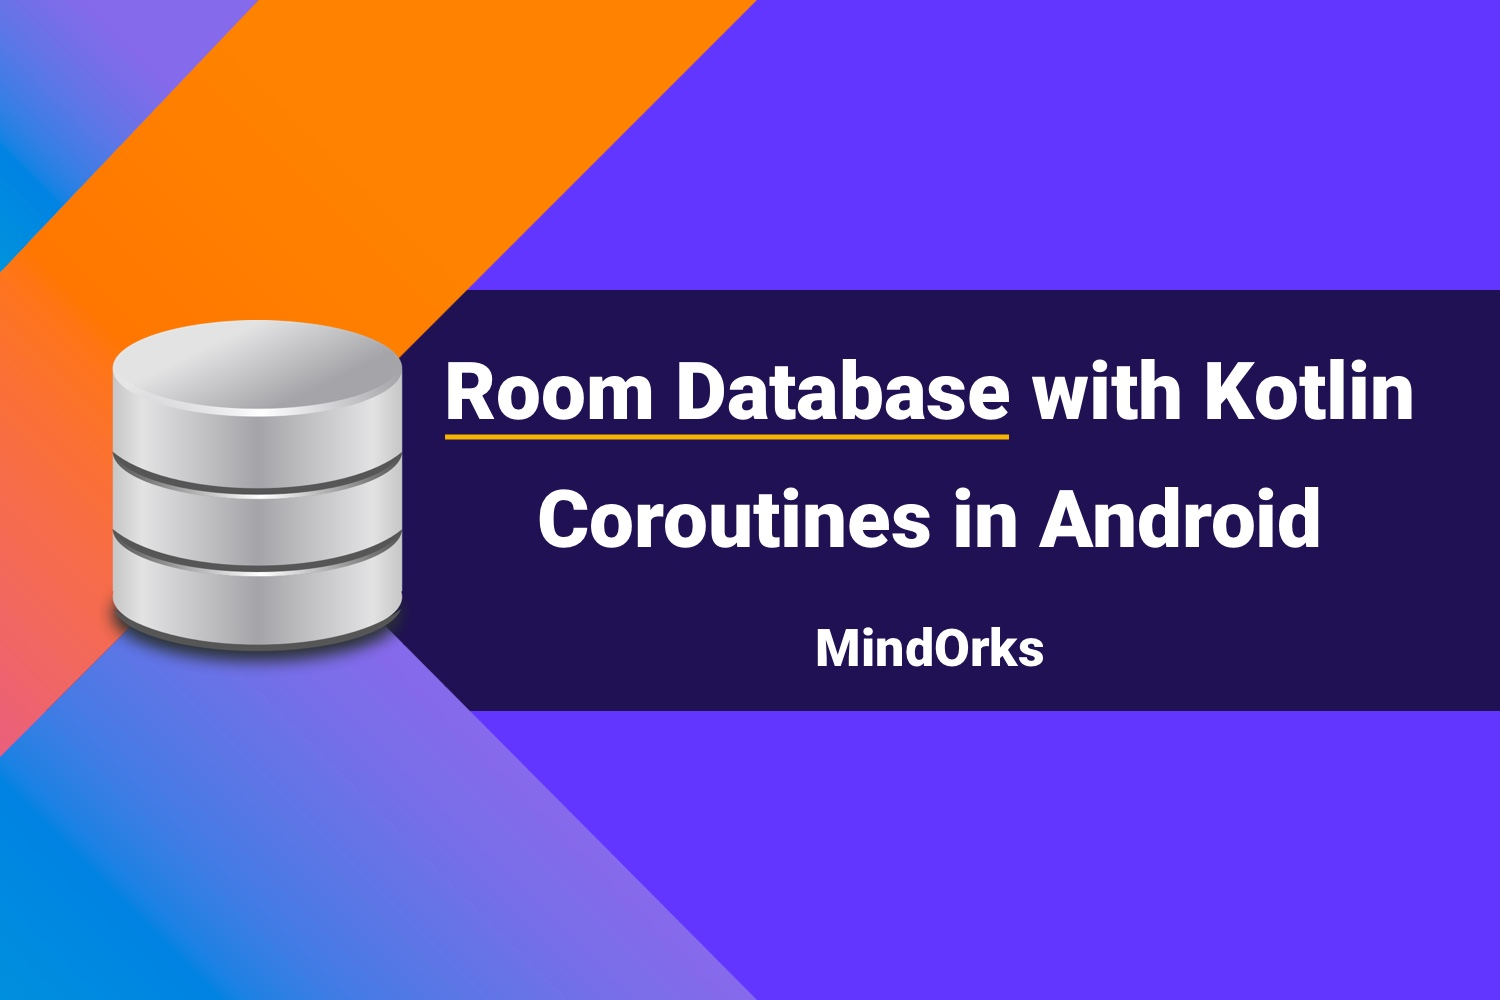 Room Database with Kotlin Coroutines in Android